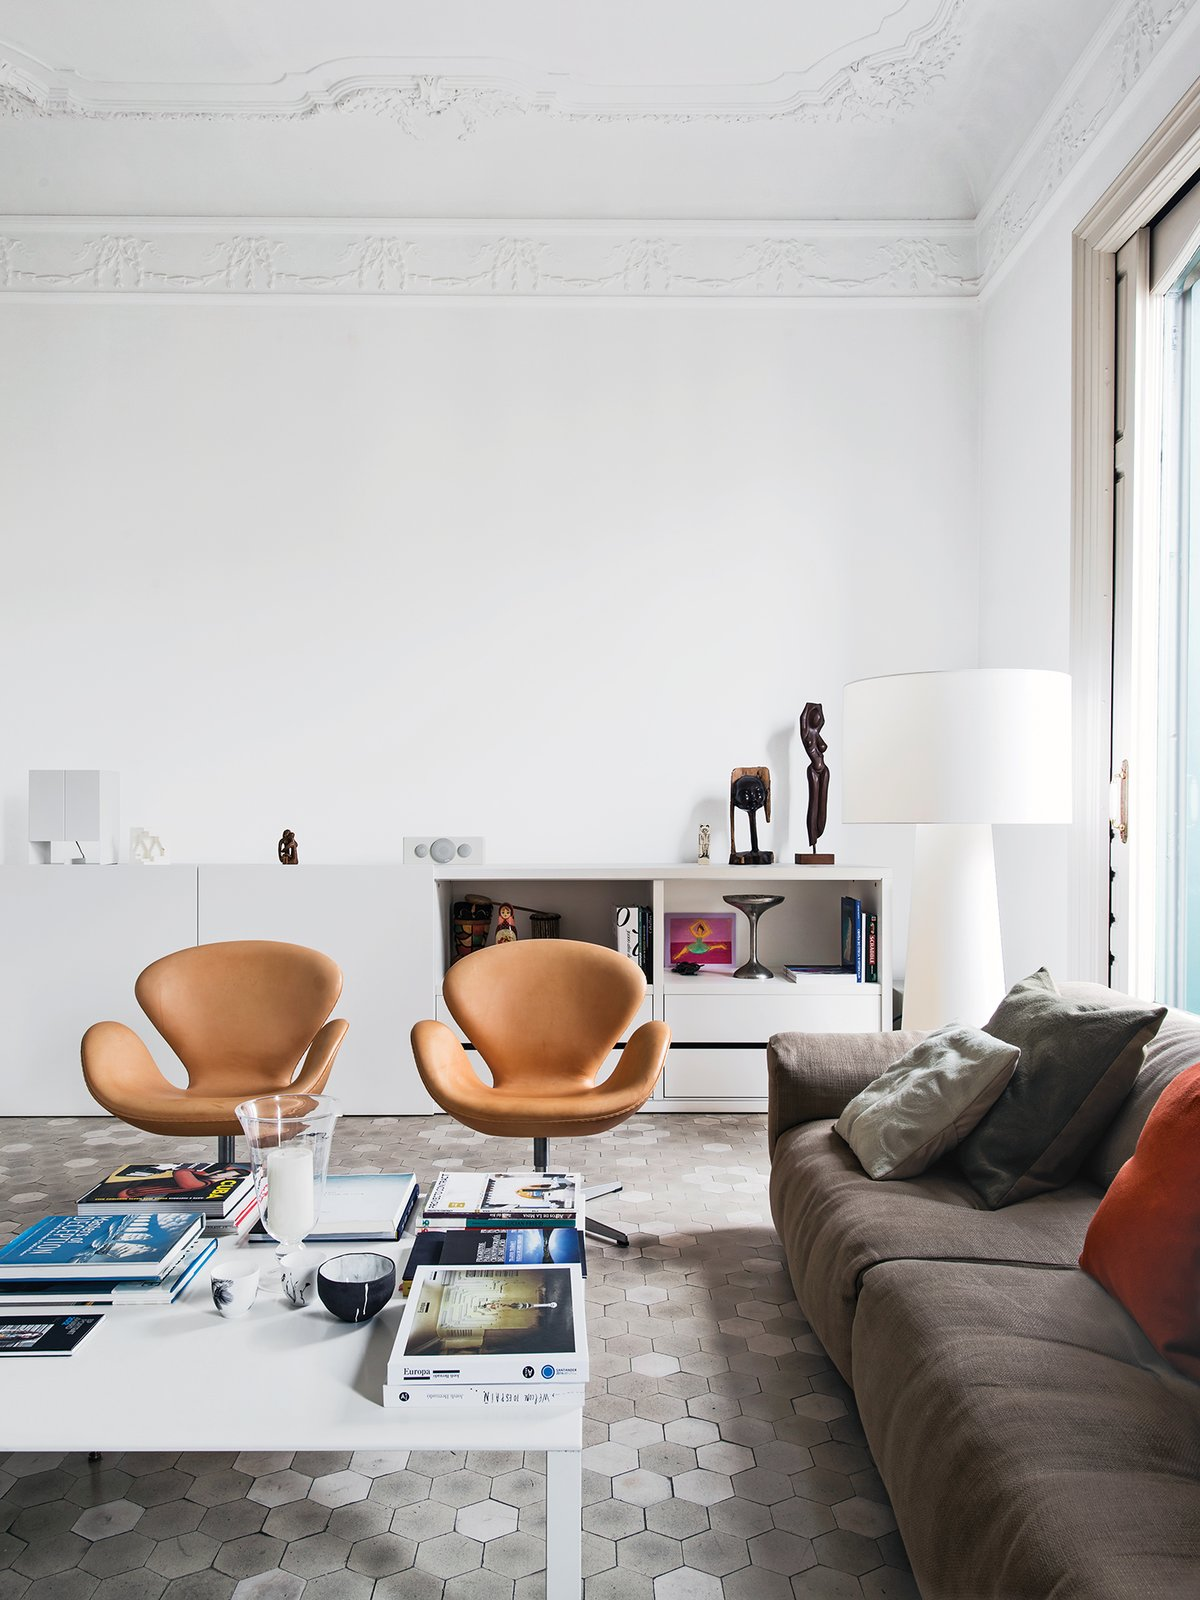 Living Room, Chair, Sofa, and Coffee Tables In the living room of the Barcelona apartment designer Elina Vila D'Acosta-Calheiros shares with her husband, Ginés Gorriz, Arne Jacobsen Swan chairs join a sofa by Piero Lissoni for Living Divani. The cabinet is from Cappellini, as is the Marcel Wanders Big Shadow lamp.  Photos from Meet Marcel Wanders, 2015 Dwell on Design Keynote Speaker